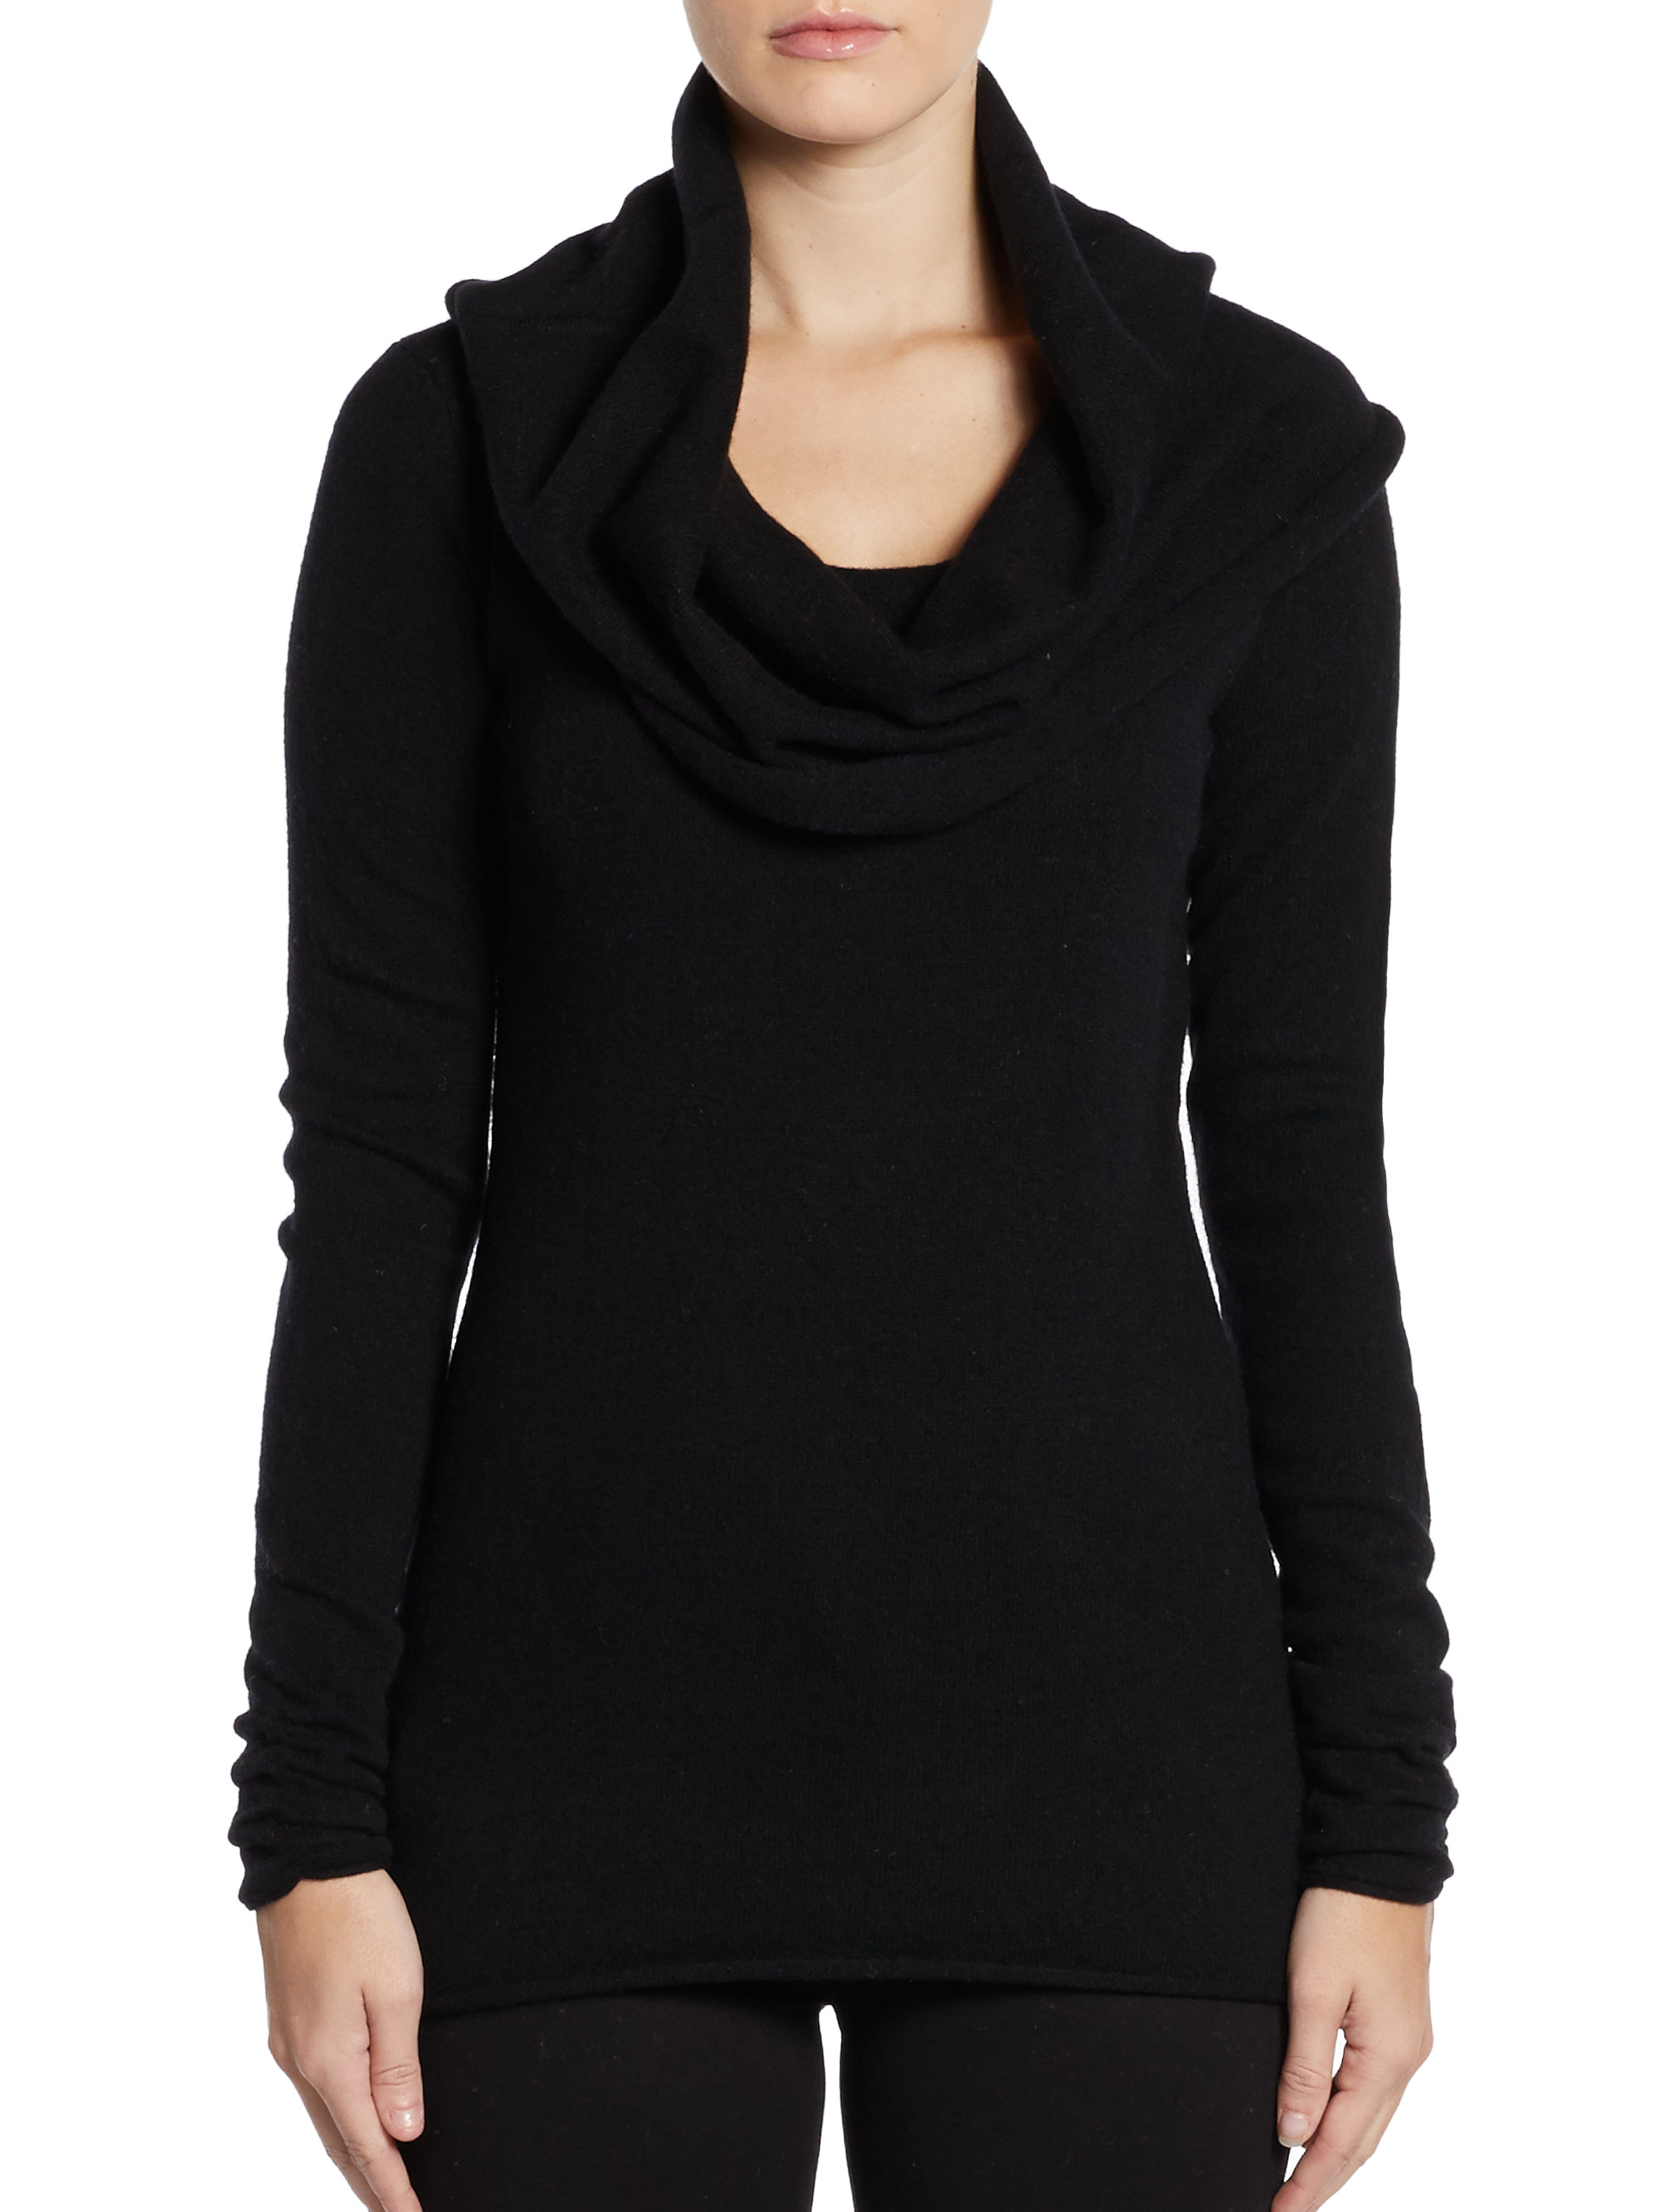 Saks fifth avenue black label Cashmere Cowl Neck Sweater in Black ...